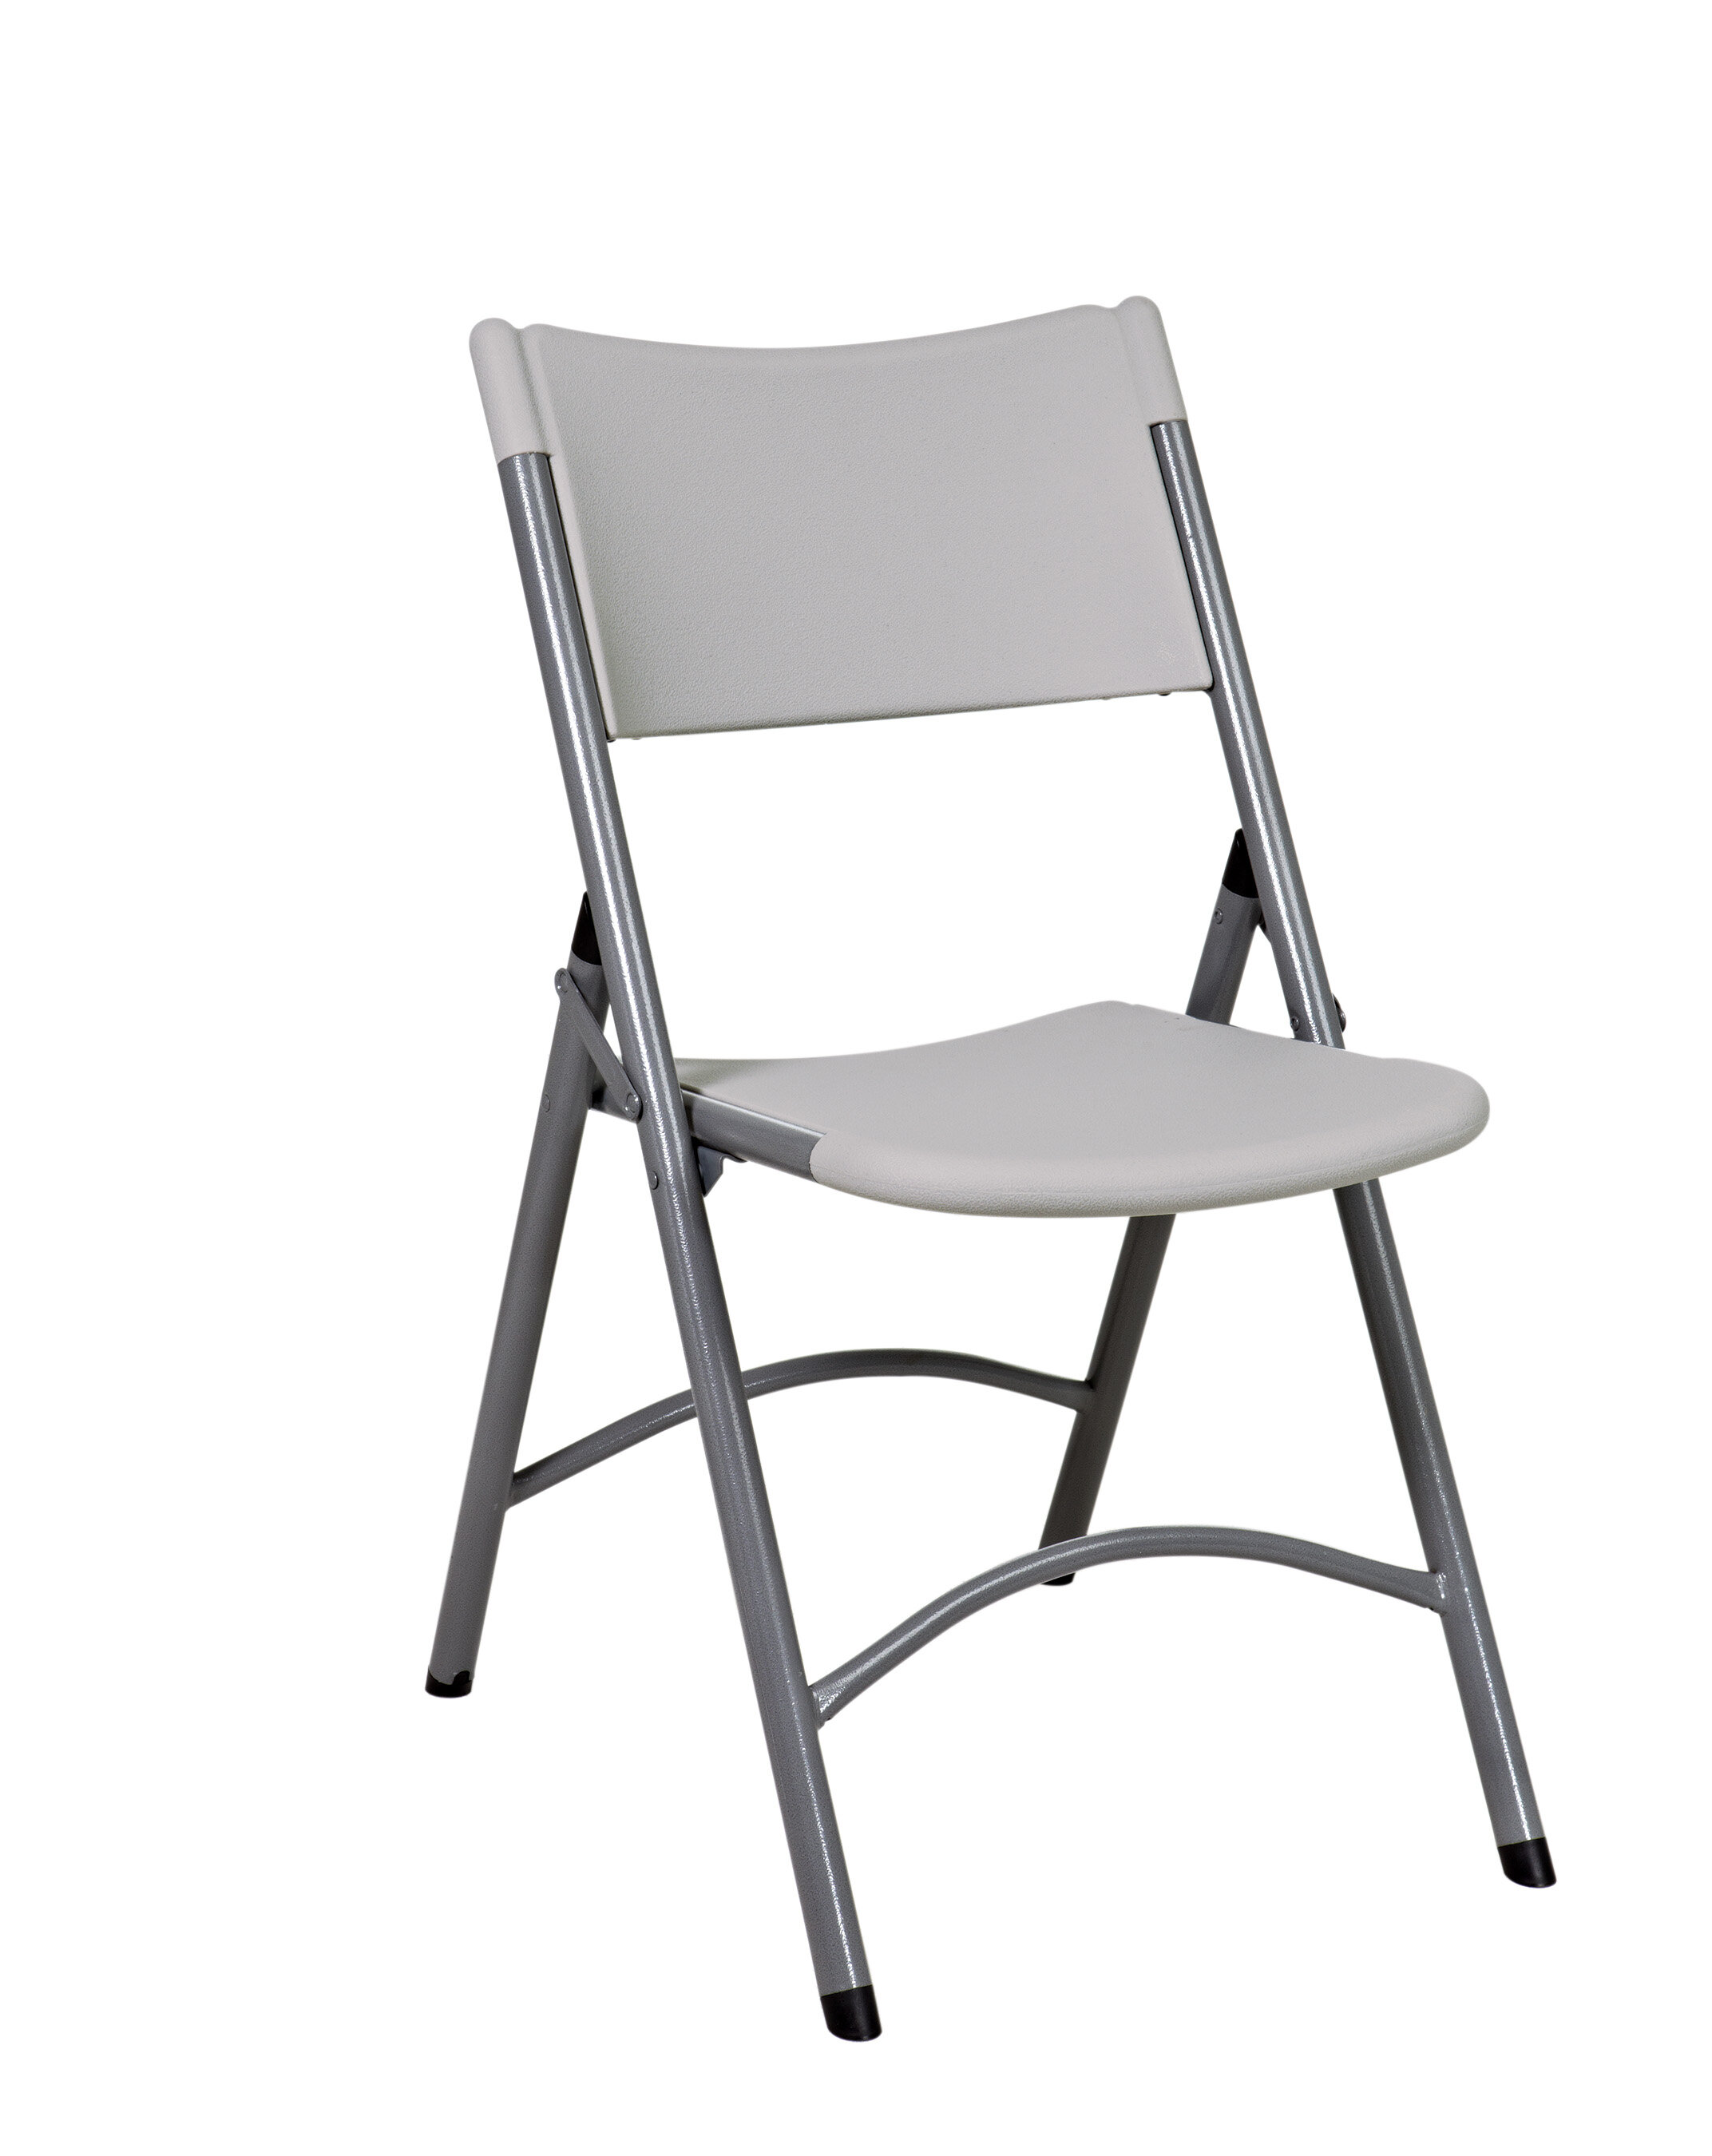 Excellent Hathcock Resin Folding Chair Theyellowbook Wood Chair Design Ideas Theyellowbookinfo